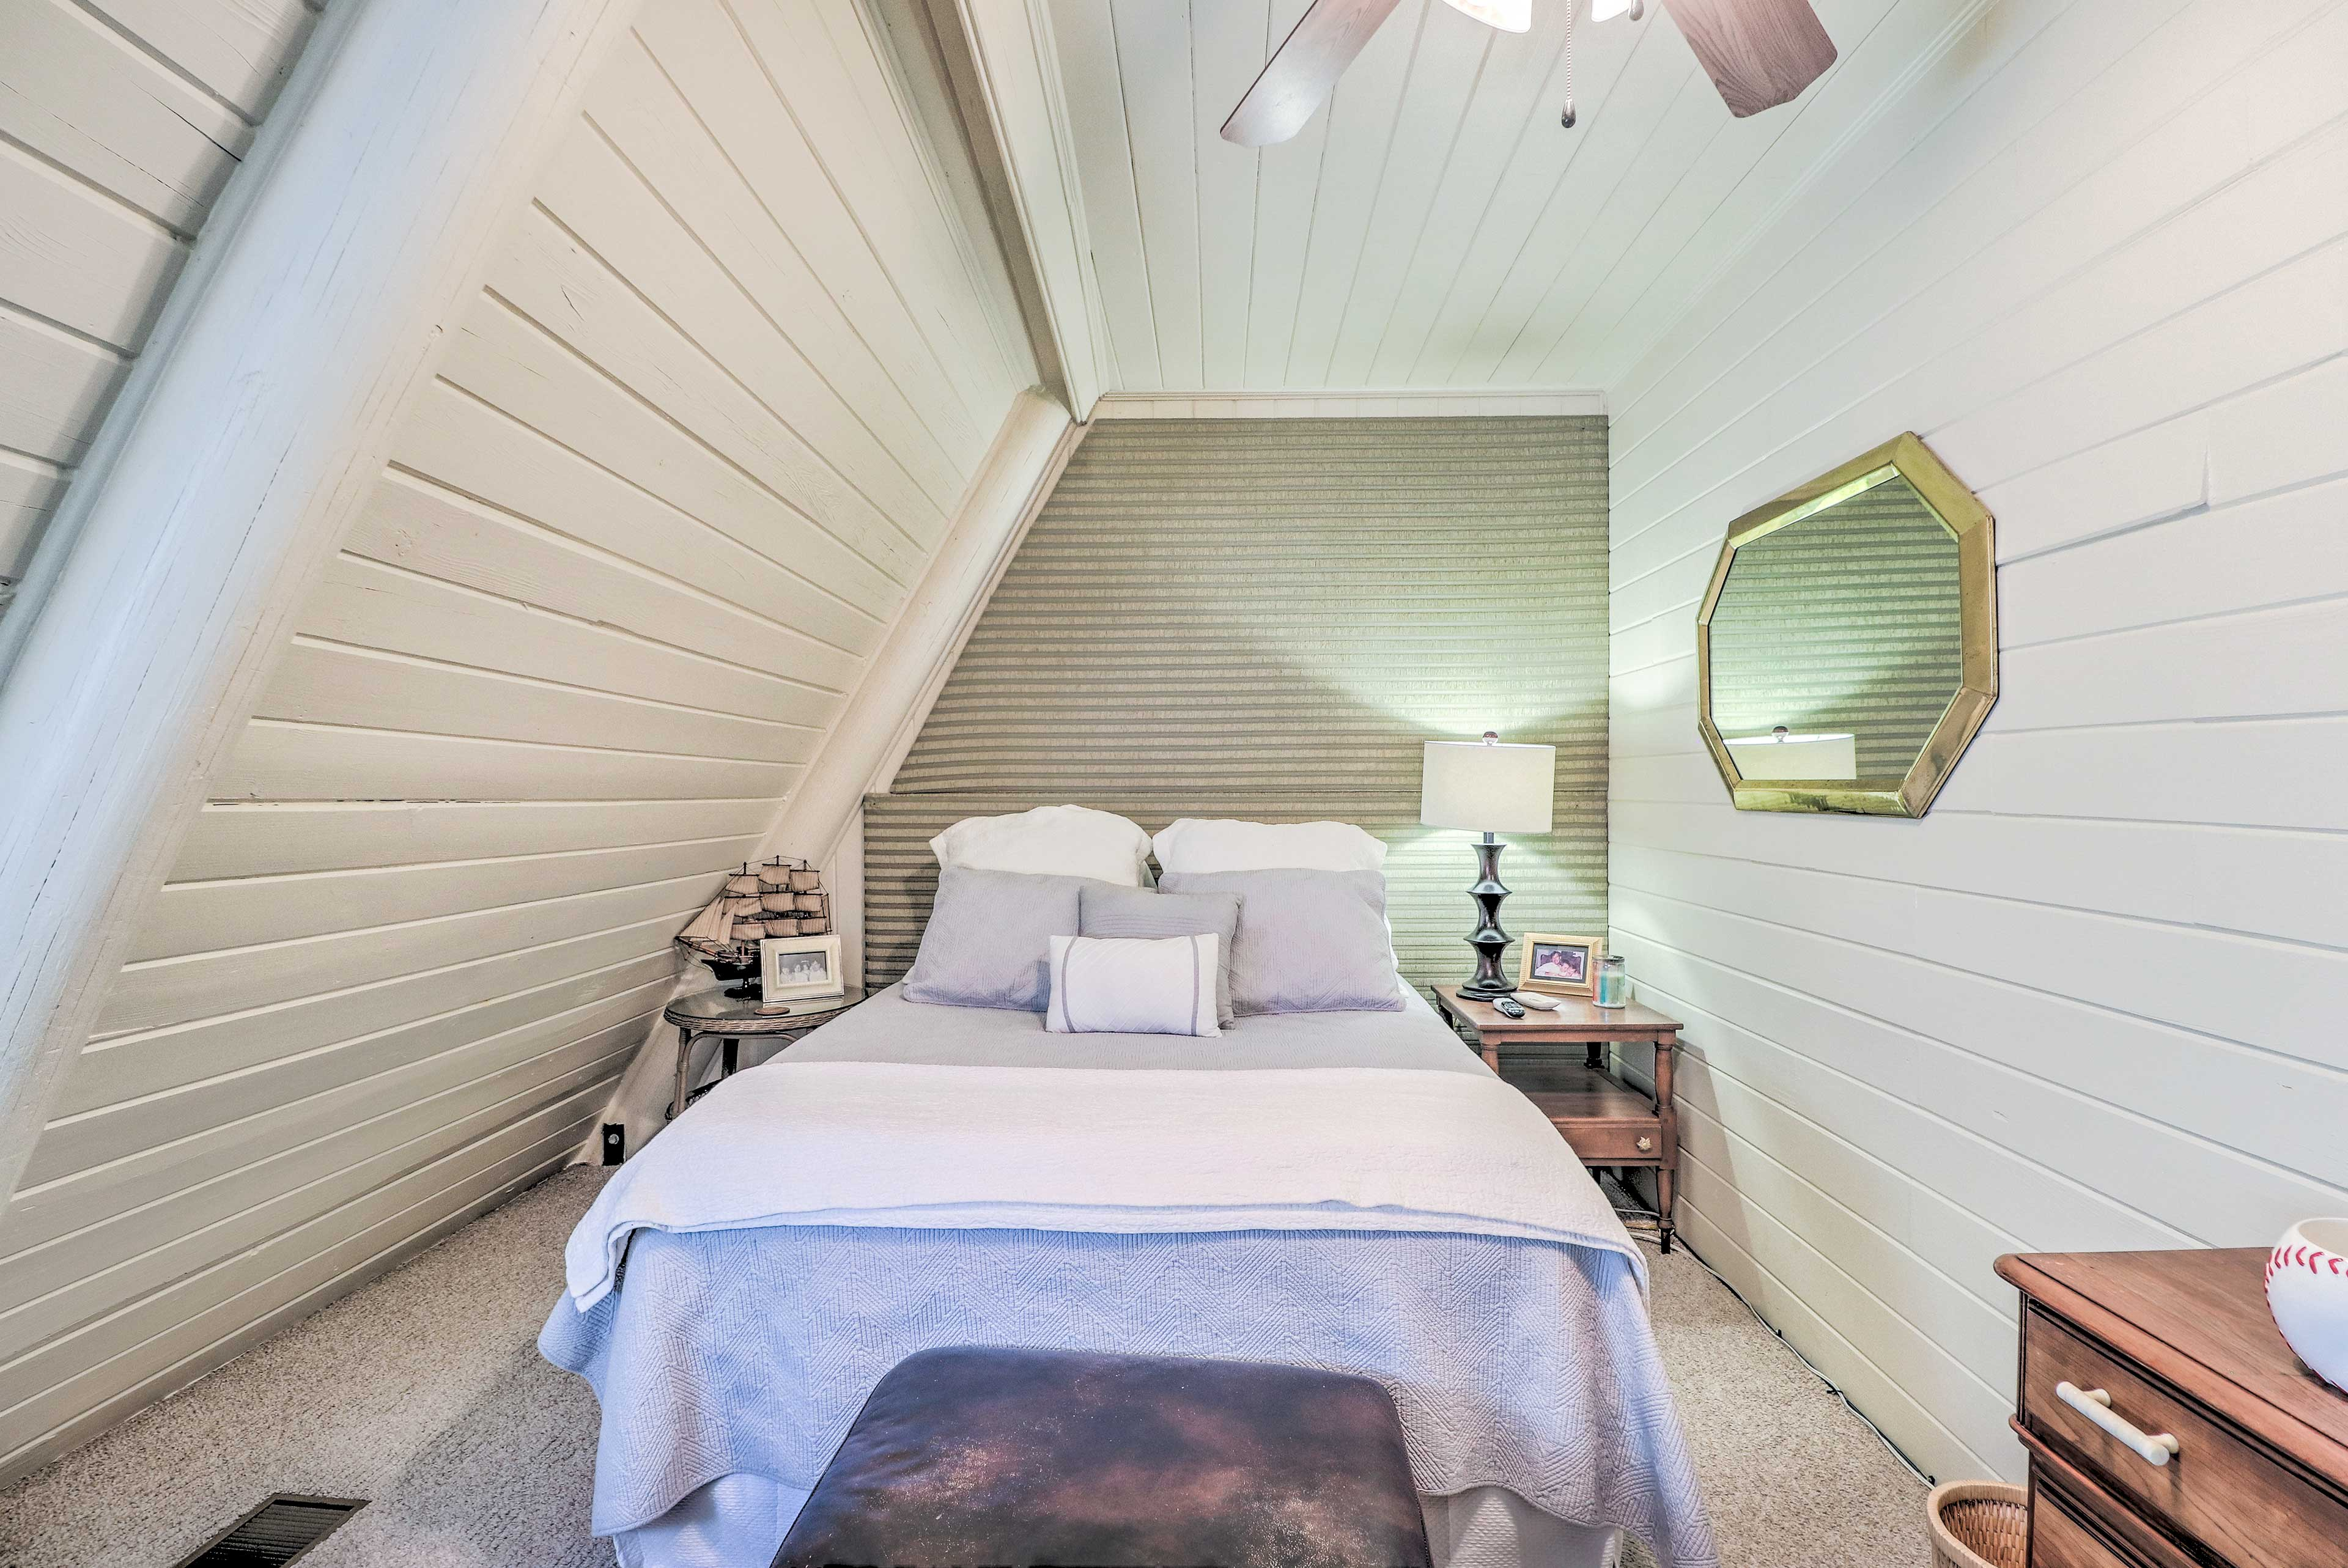 The 3rd bedroom features a queen-sized bed.